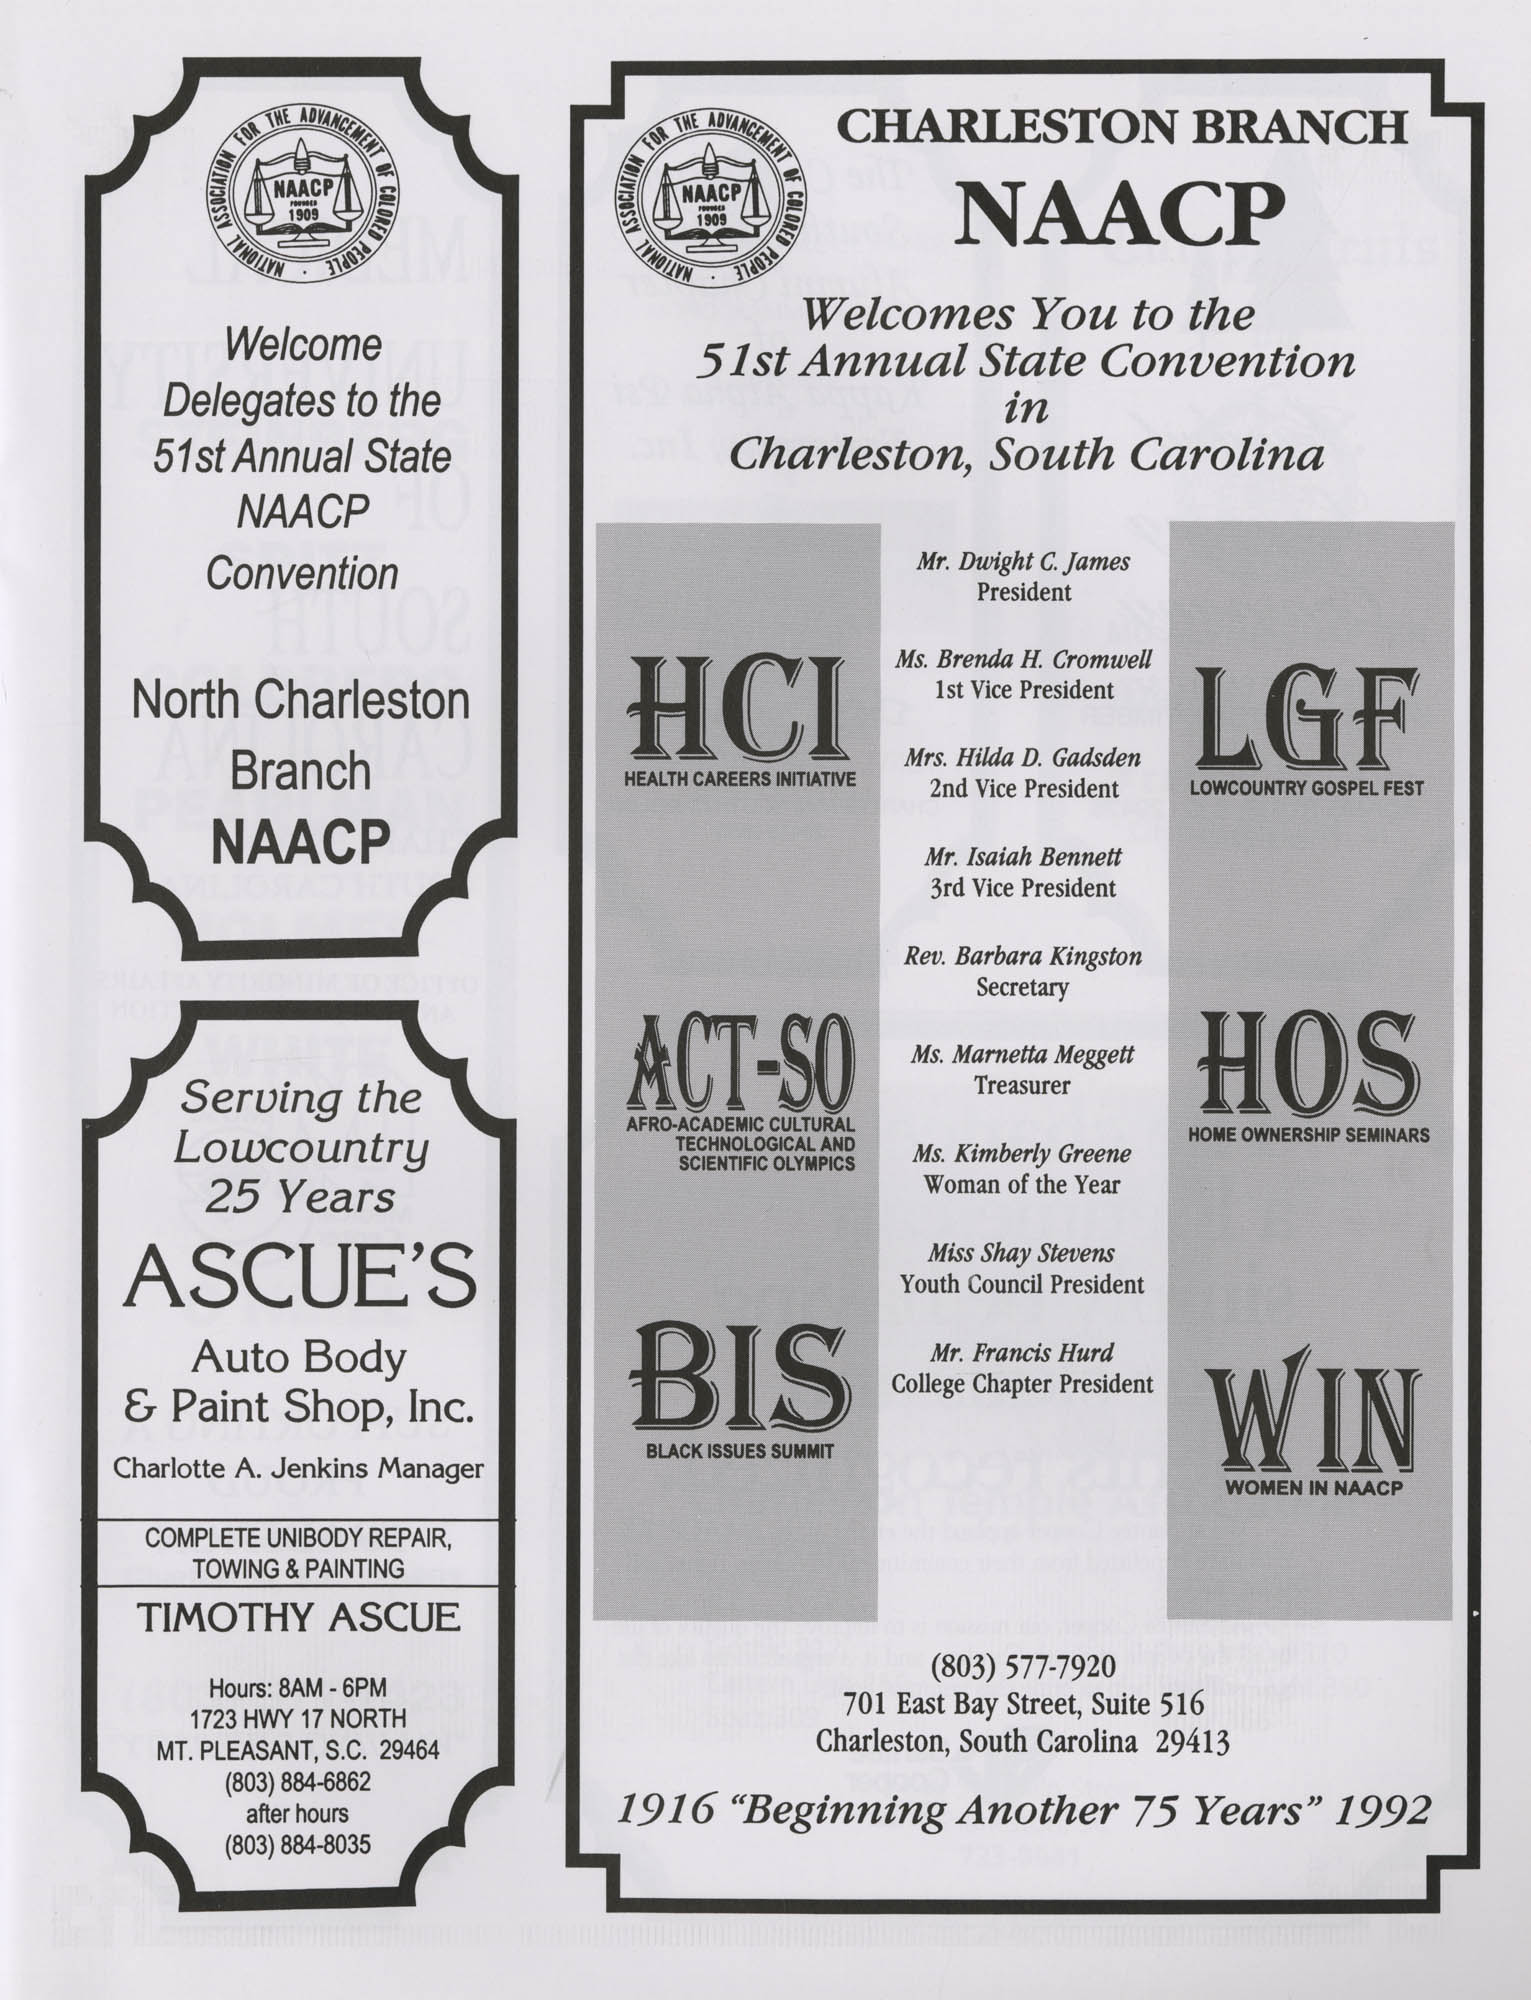 Charleston Branch of the NAACP 51st Annual State Convention Program, Page 25